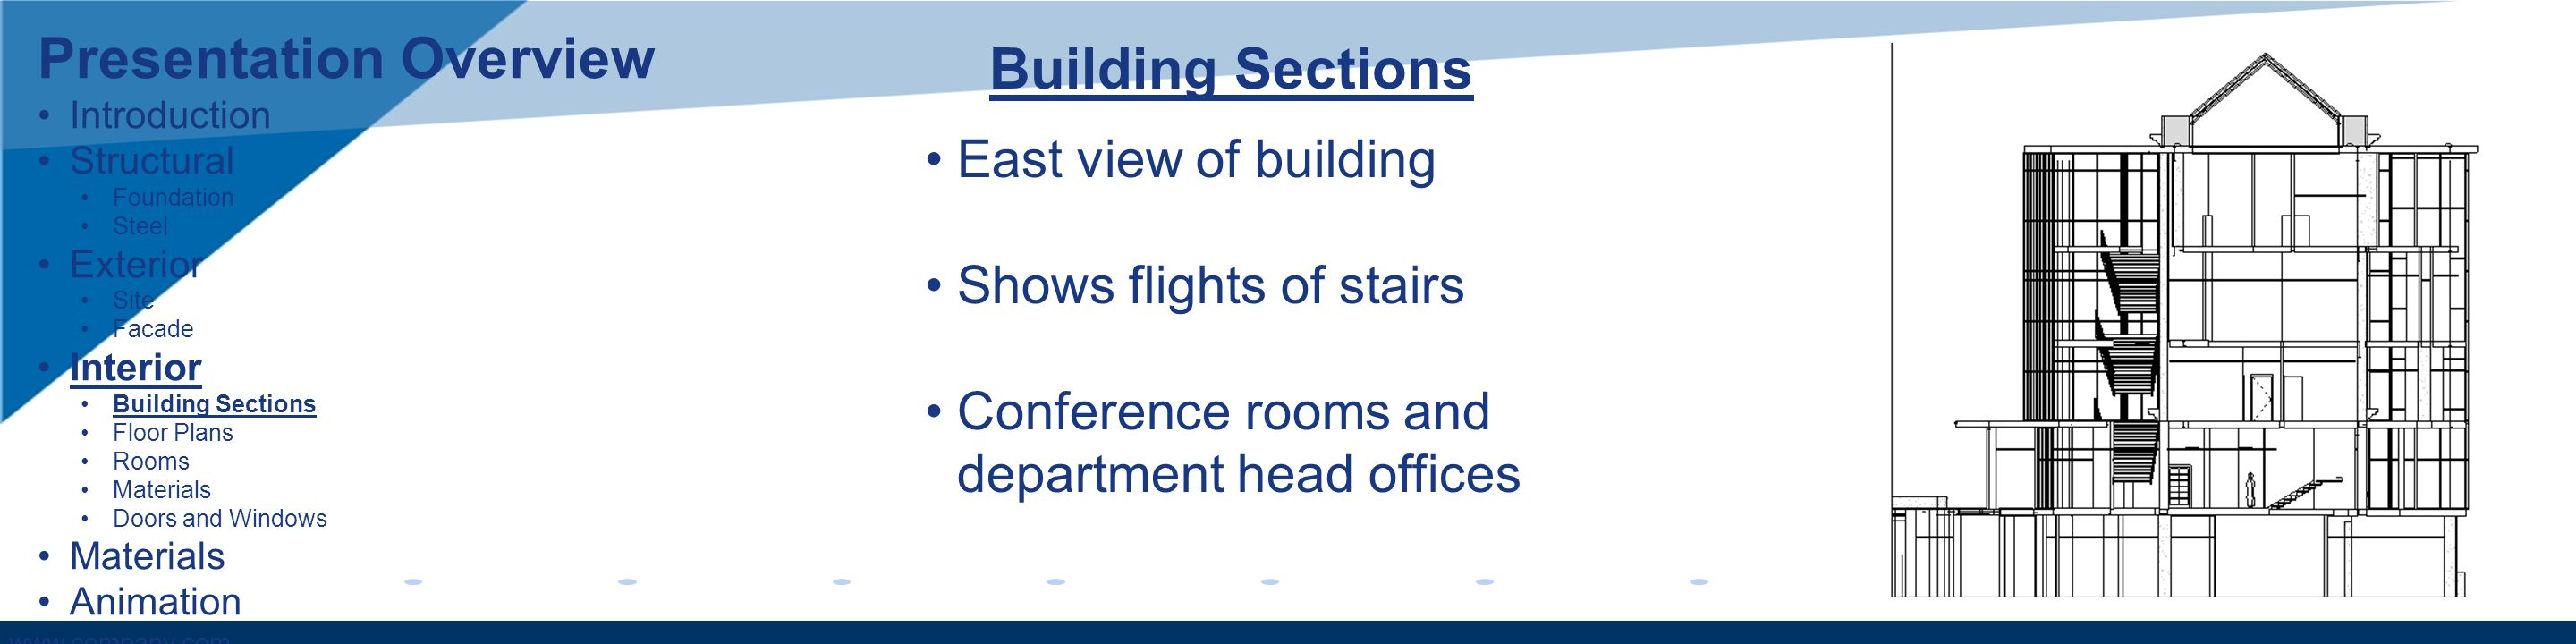 www.company.com Building Sections East view of building Shows flights of stairs Conference rooms and department head offices Presentation Overview Introduction Structural Foundation Steel Exterior Site Facade Interior Building Sections Floor Plans Rooms Materials Doors and Windows Materials Animation